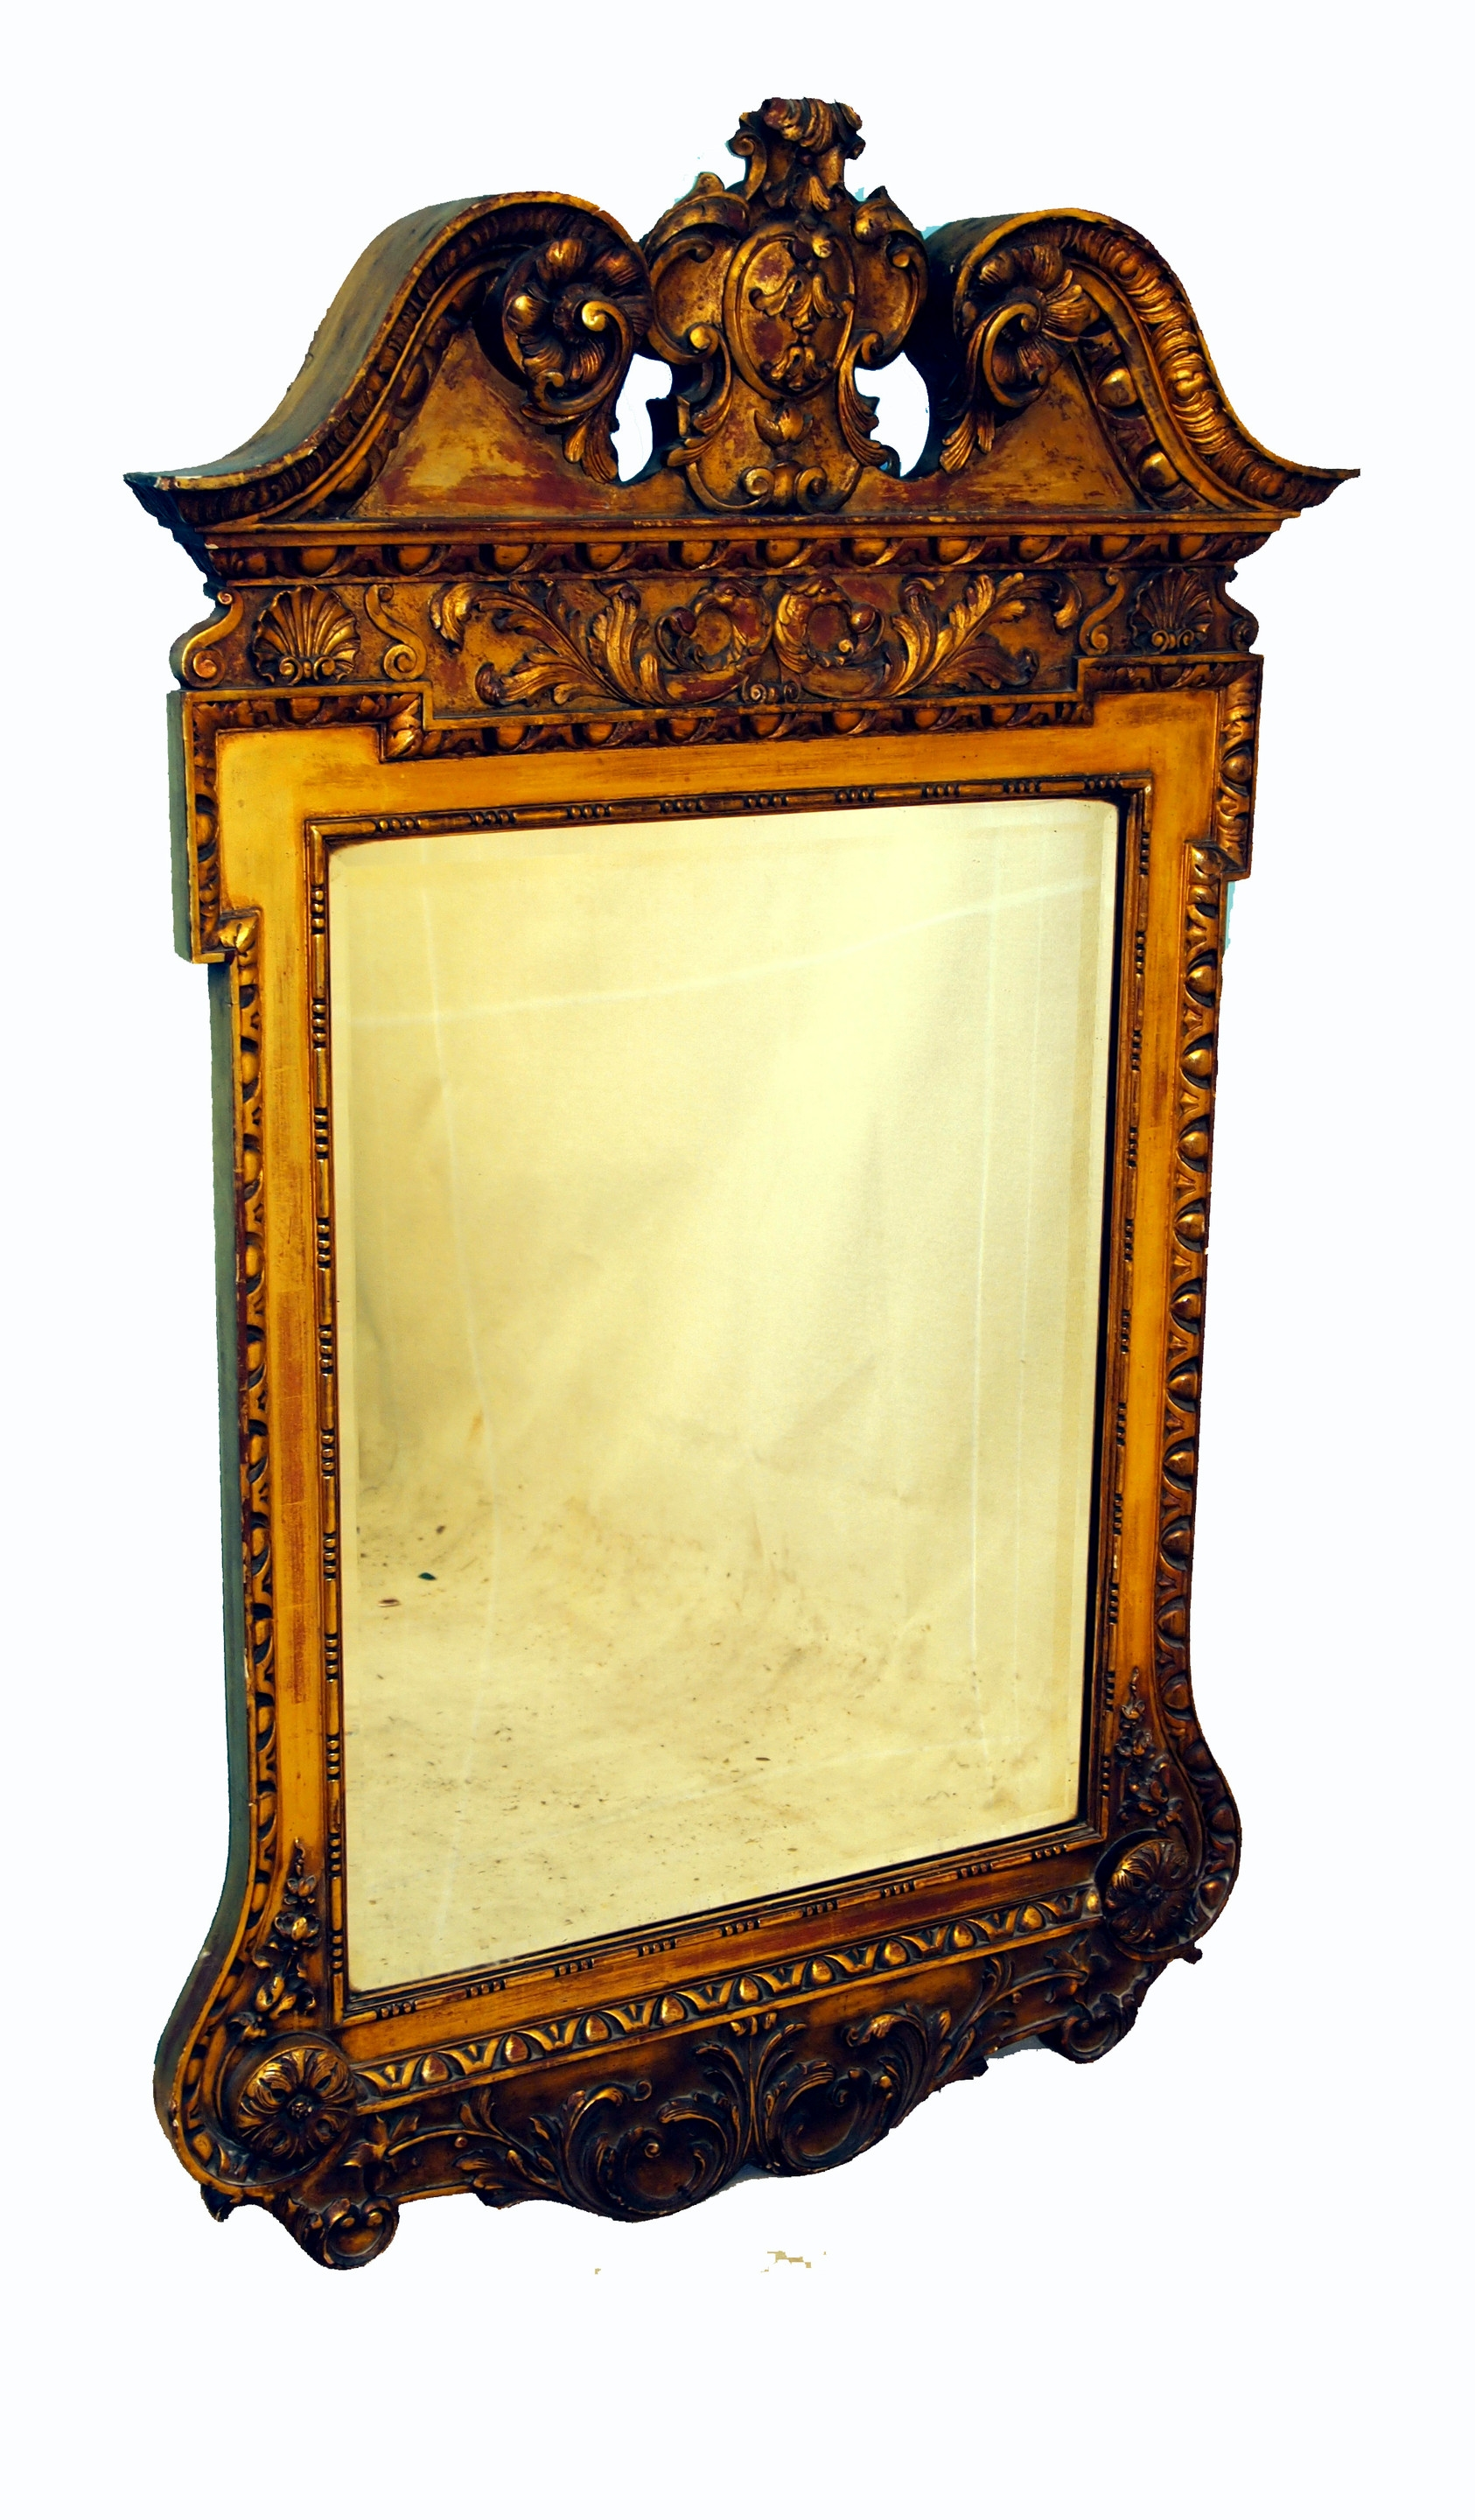 Antique Victorian Gilt Wall Mirror In The Manner Of William Kent Pertaining To Victorian Mirrors Antique (Image 6 of 15)